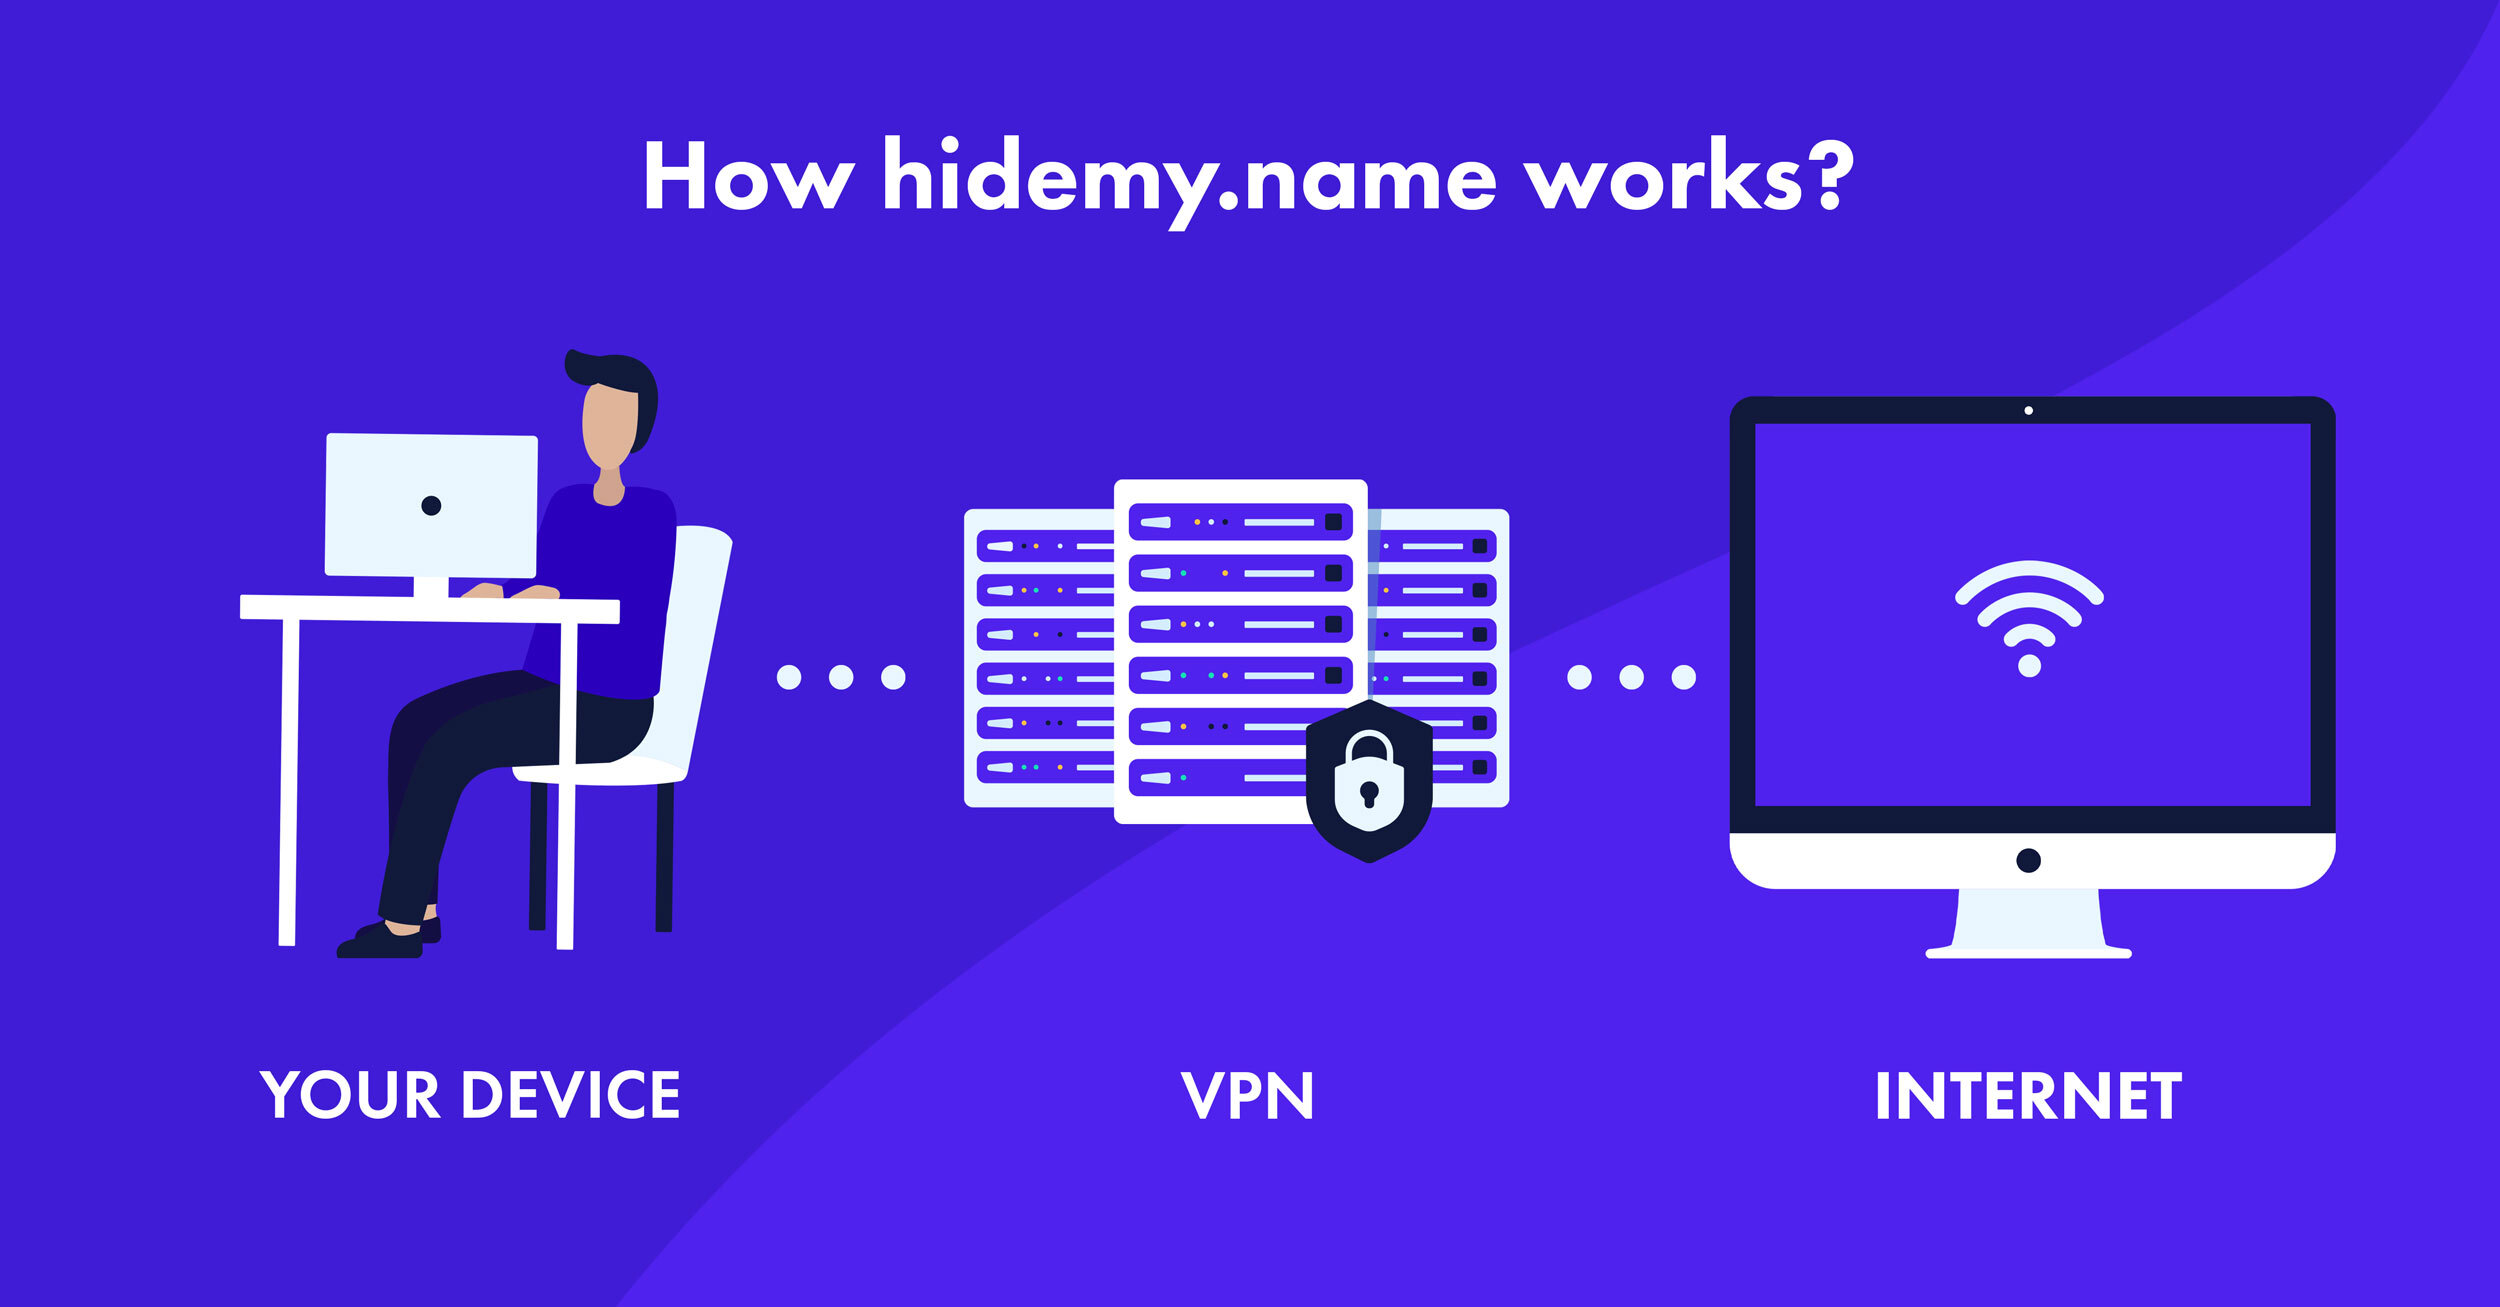 how vpn works hidemy.name